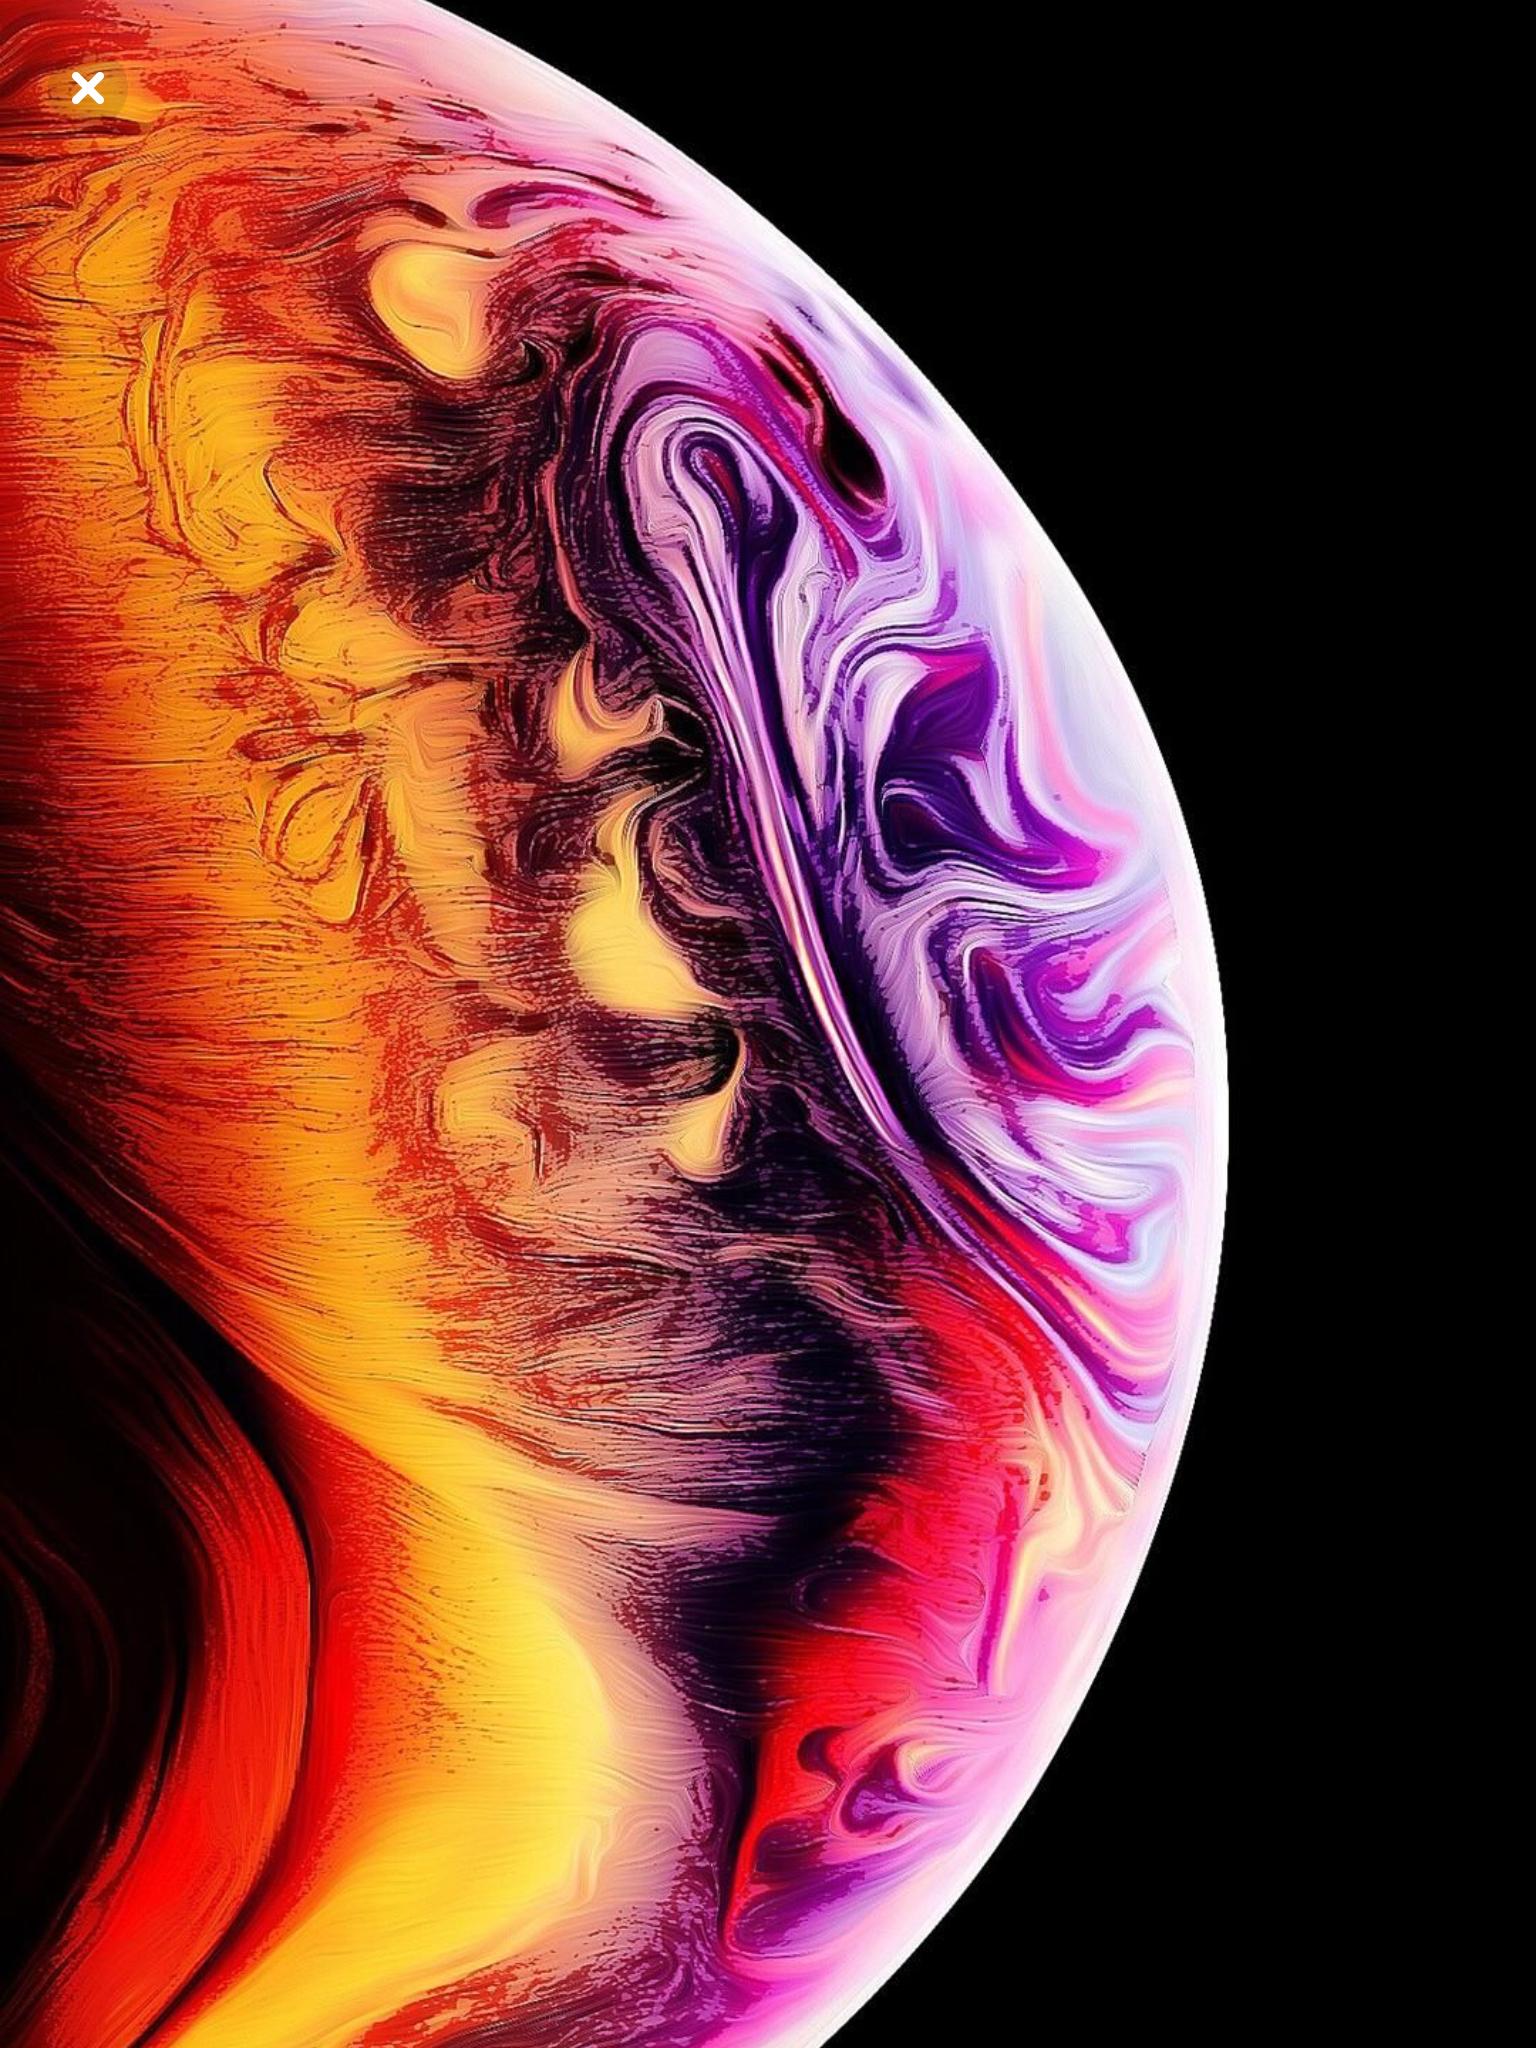 Iphone Xs And Xs Max Wallpaper In 2019 Apple Wallpaper